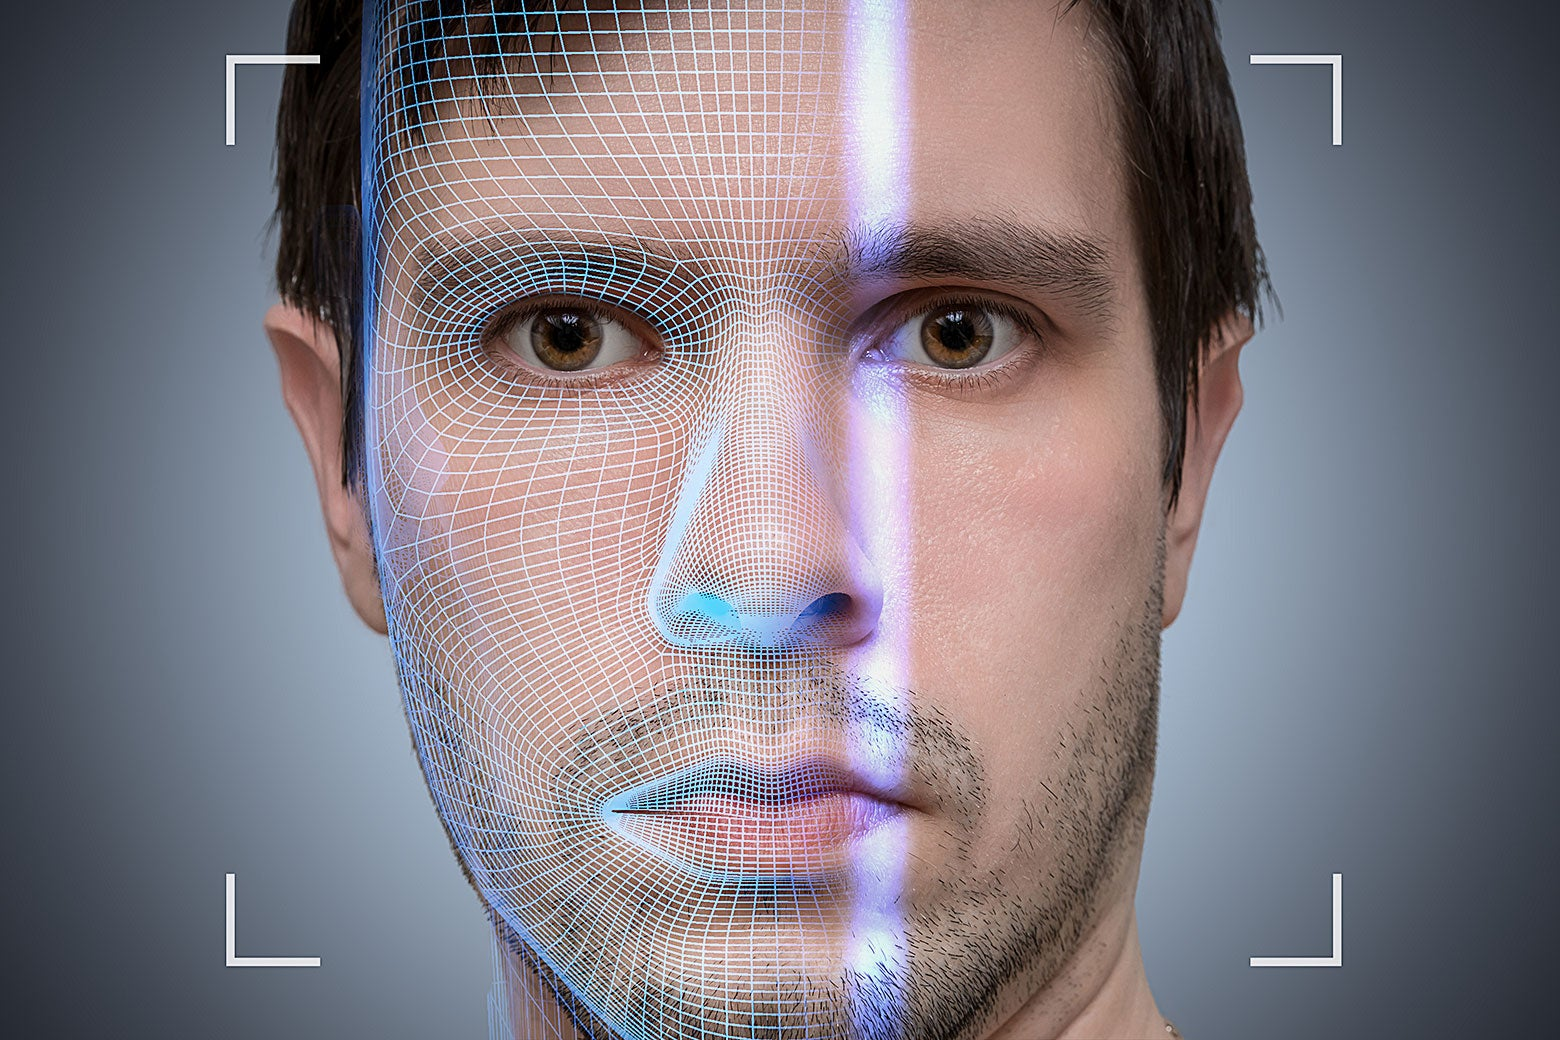 A face of a young man being biometrically scanned.